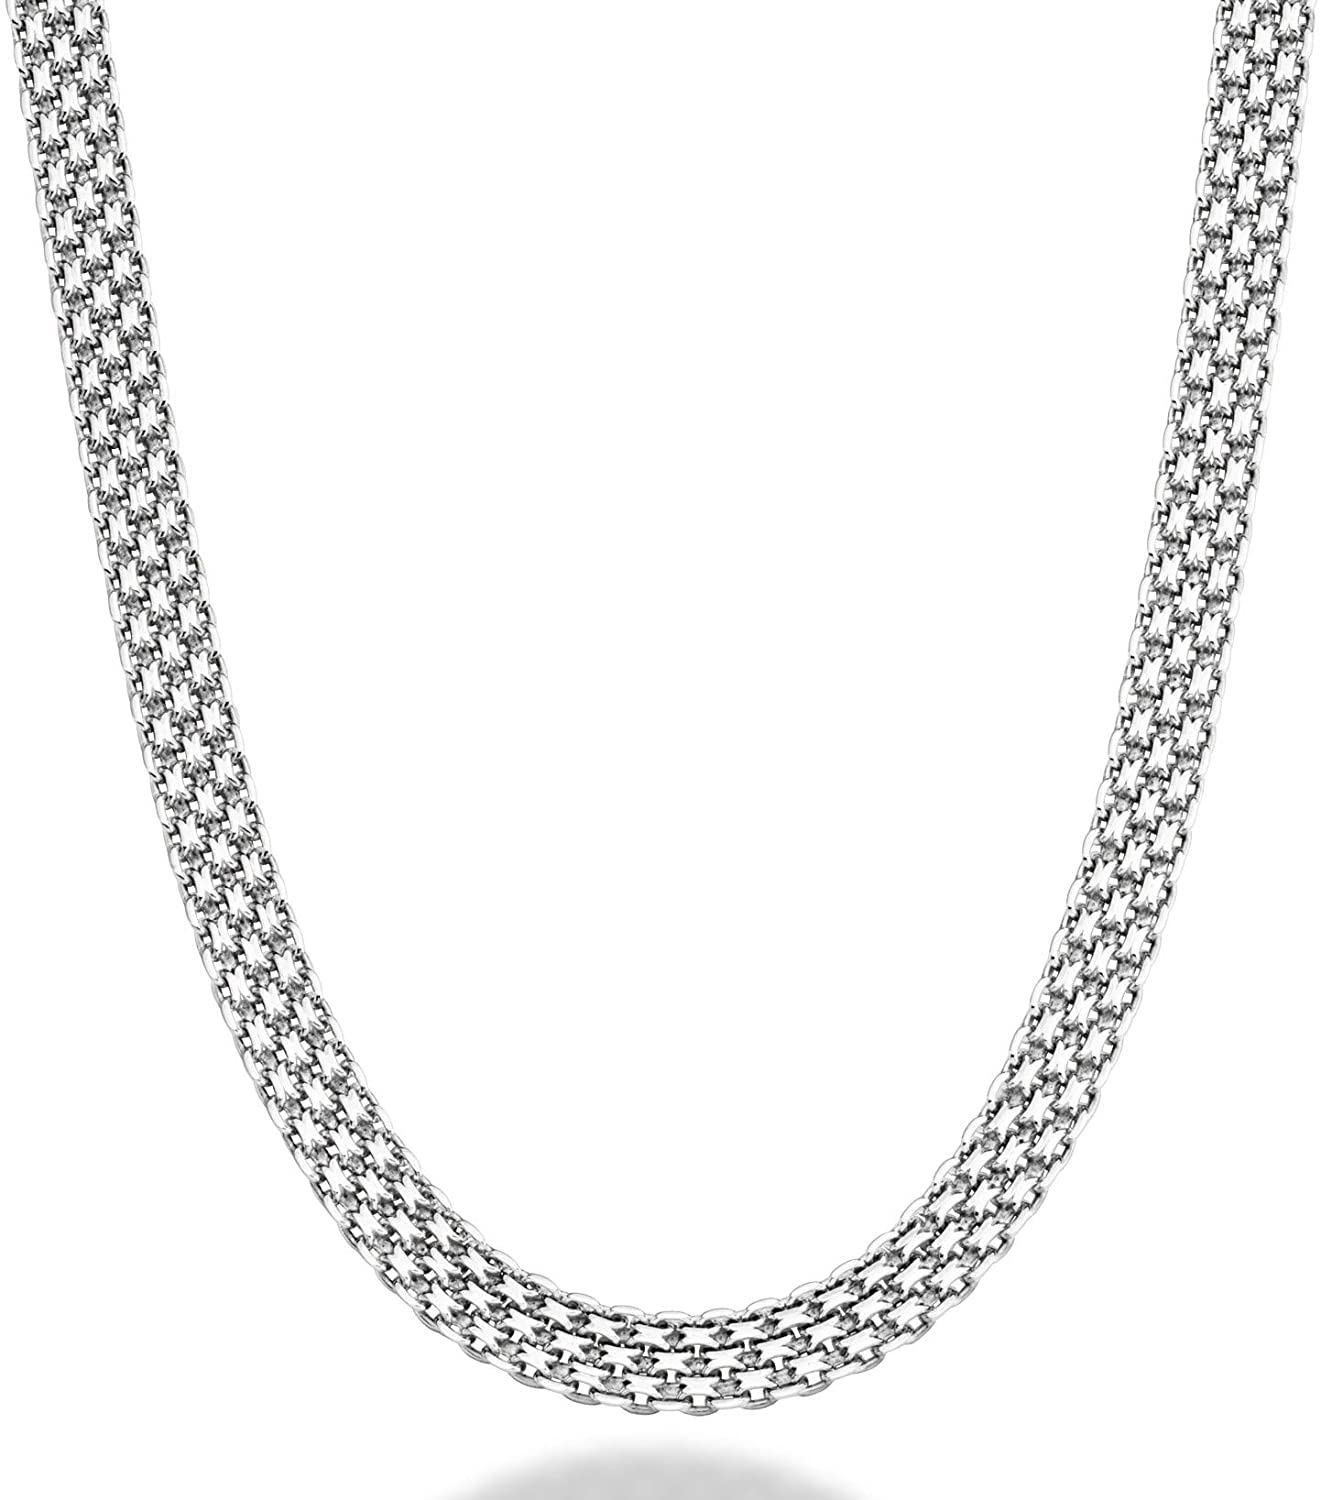 Miabella 925 Sterling Silver Italian 6mm Solid Mesh Link Chain Necklace for Women 18, 20 Inch Made in Italy